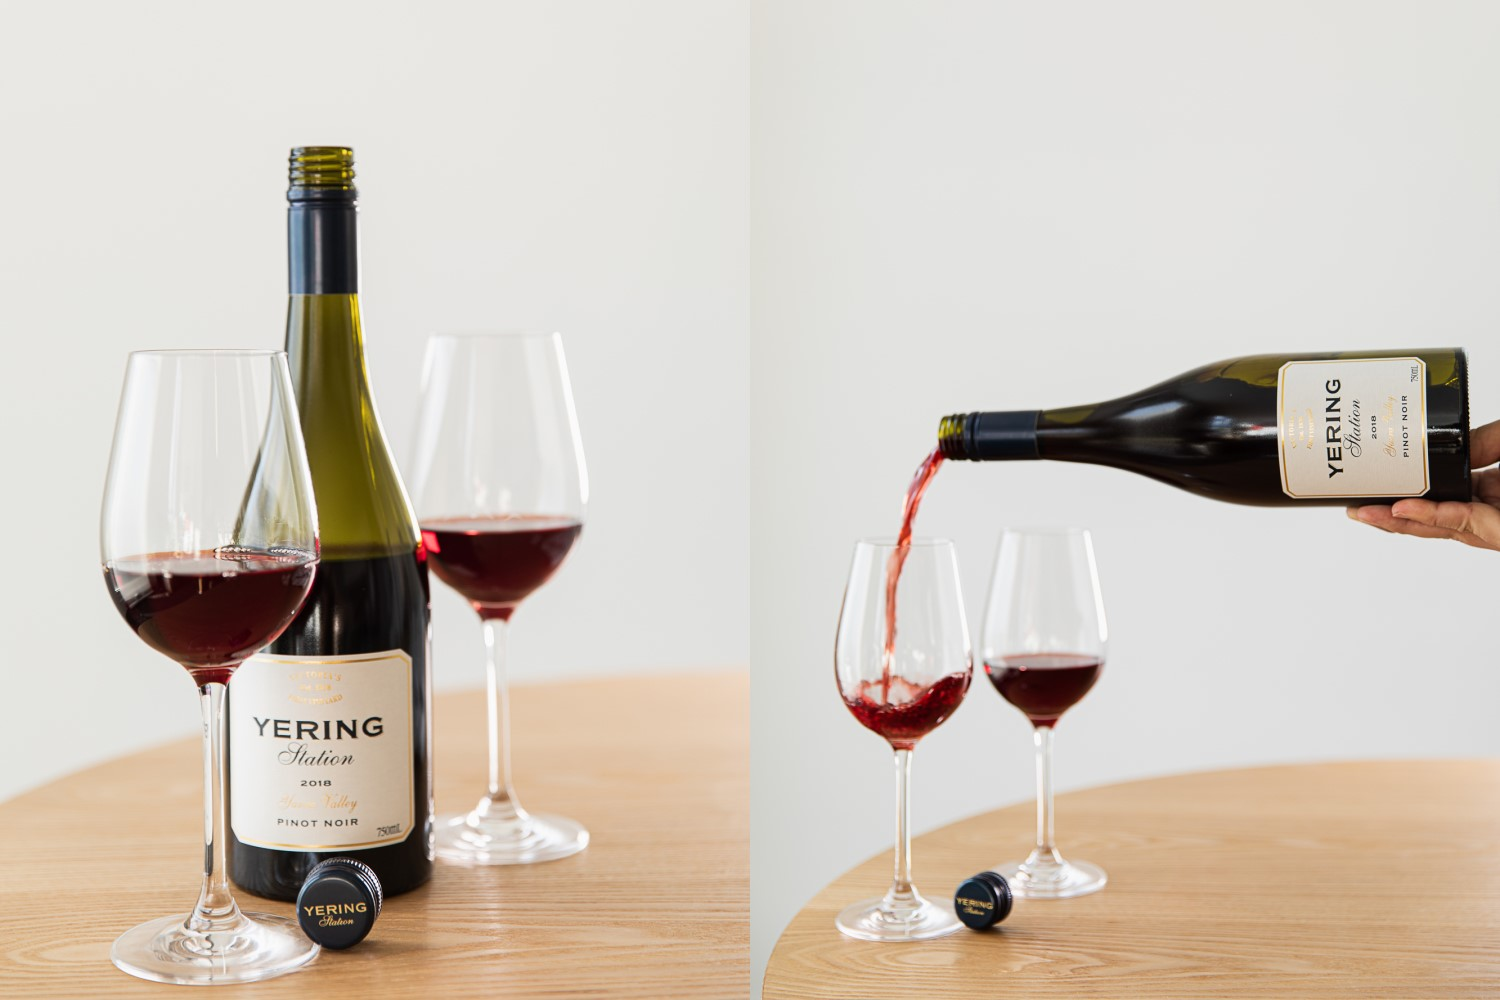 Yering Station's 2018 Pinot Noir is a sumptuous blast from the past